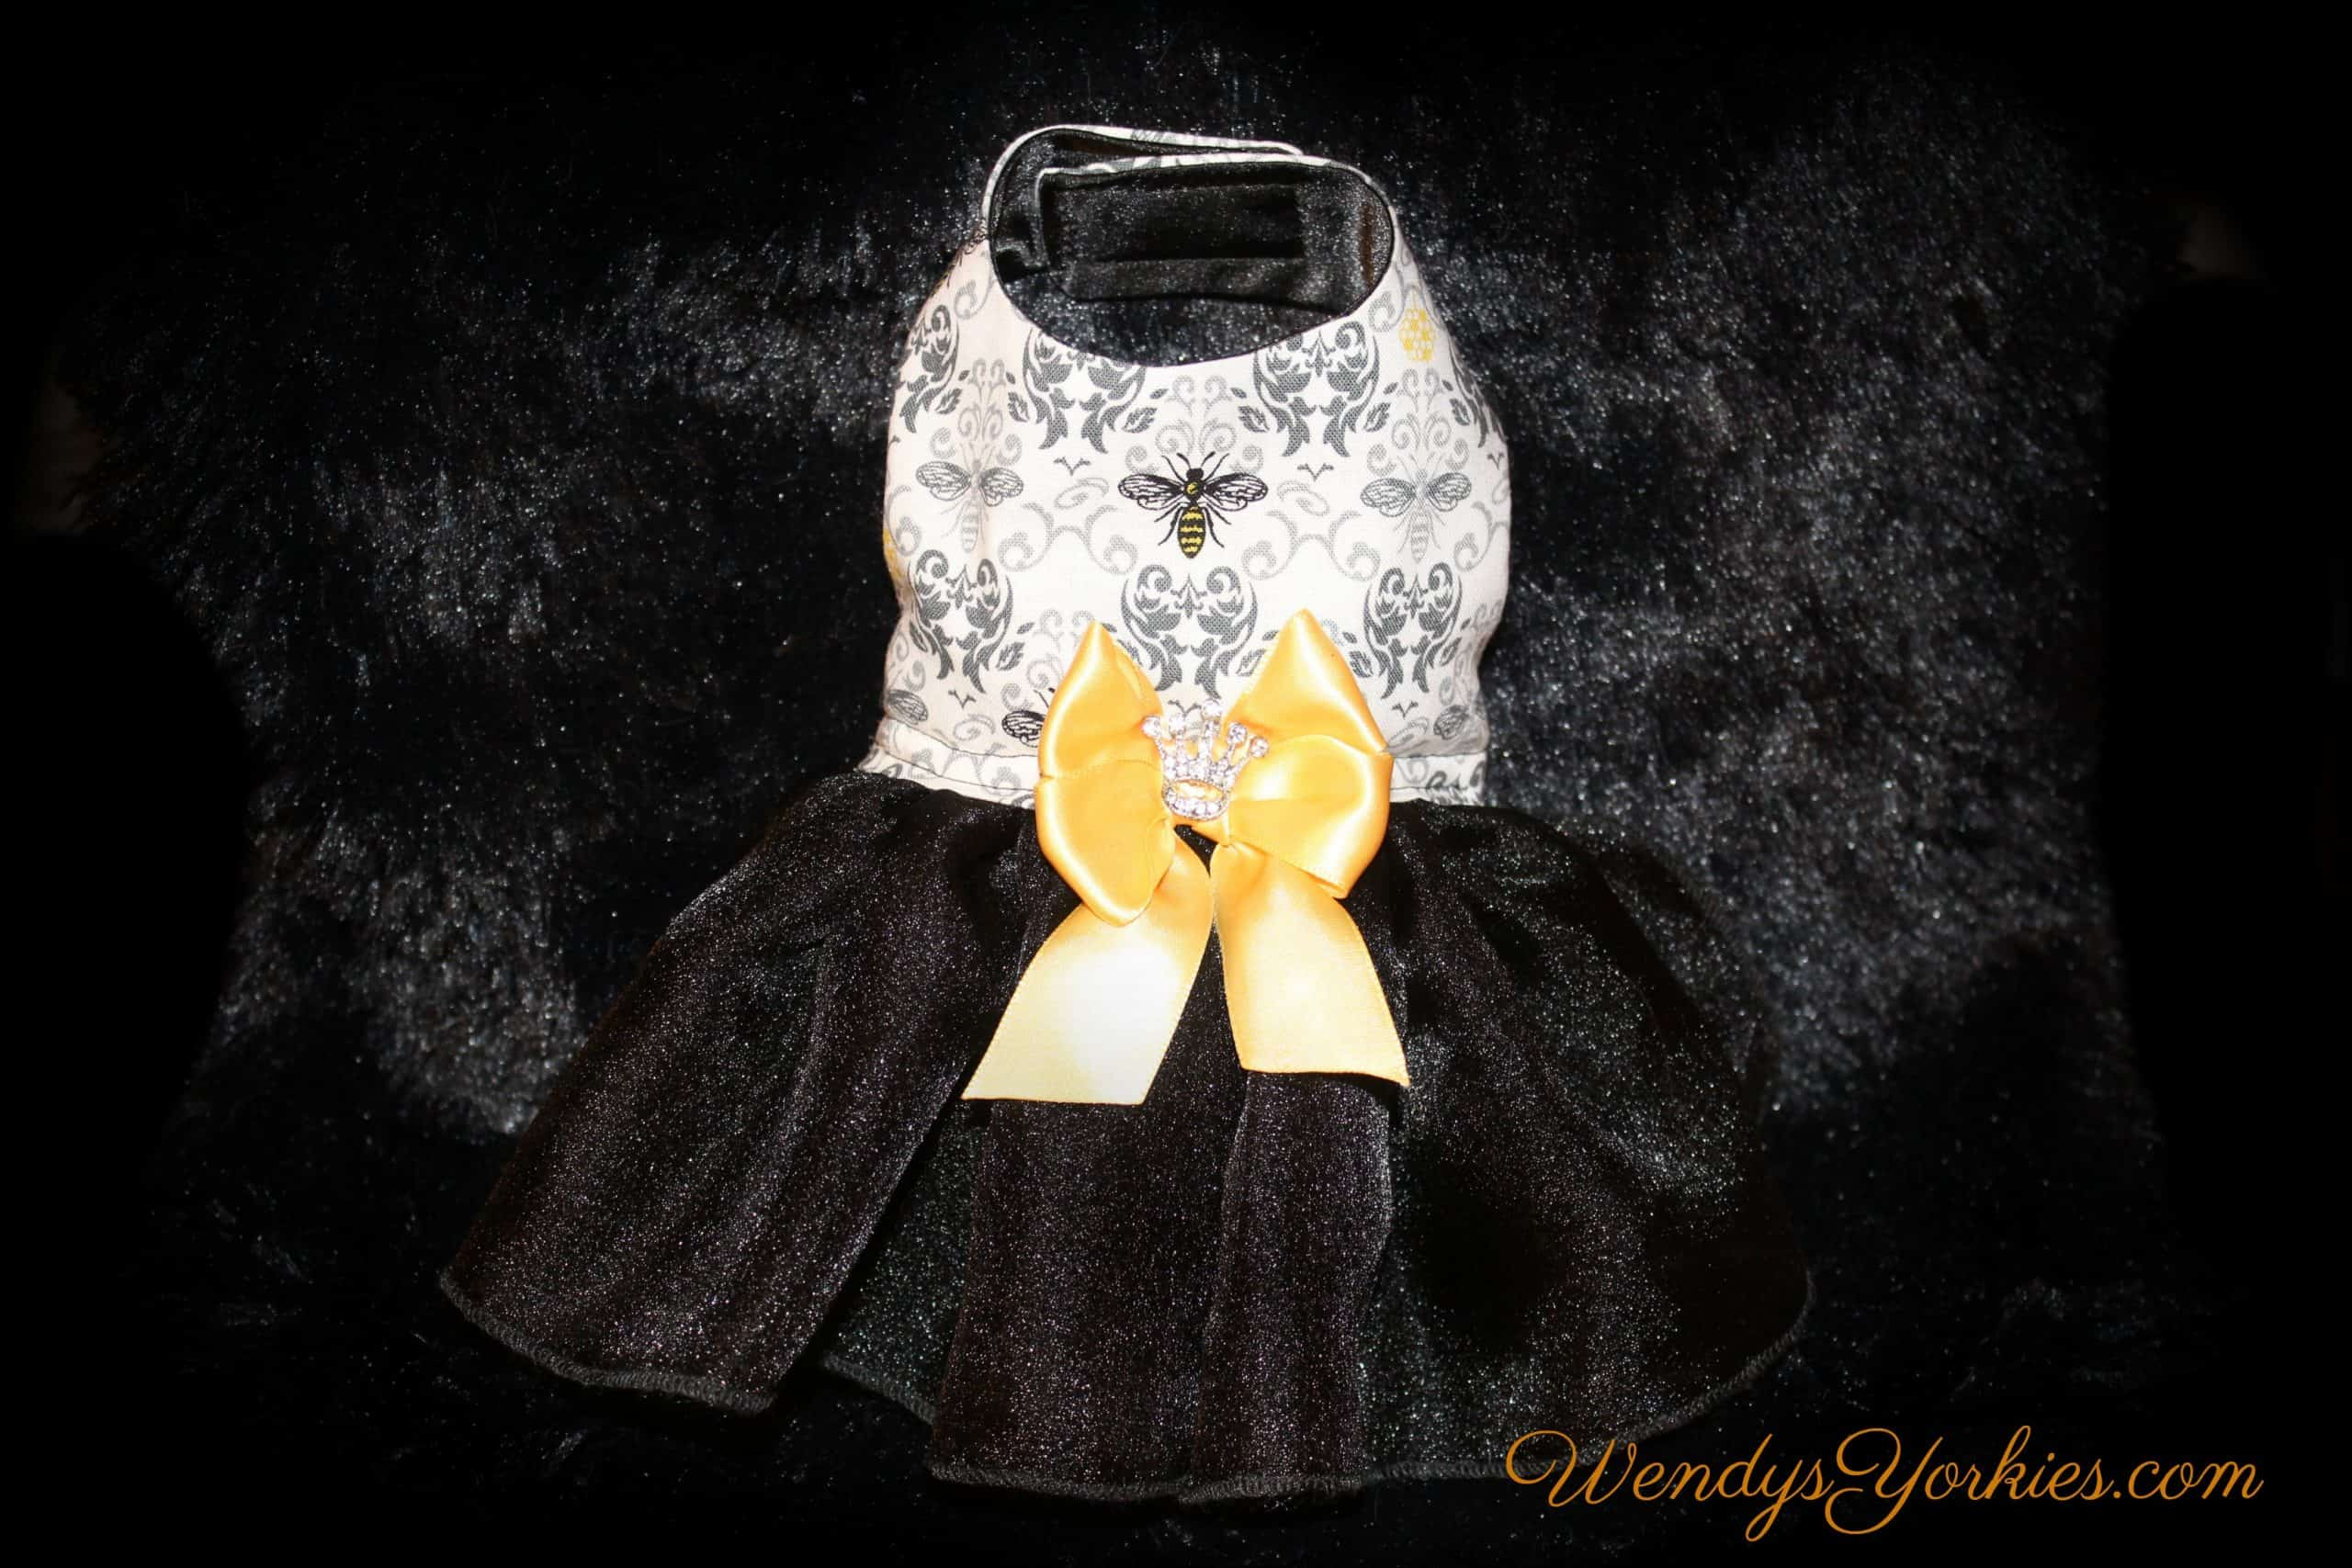 Custom dog dresses, Napoleon Bee Dog dress, Yorkie dresses, WendysYorkies.com,